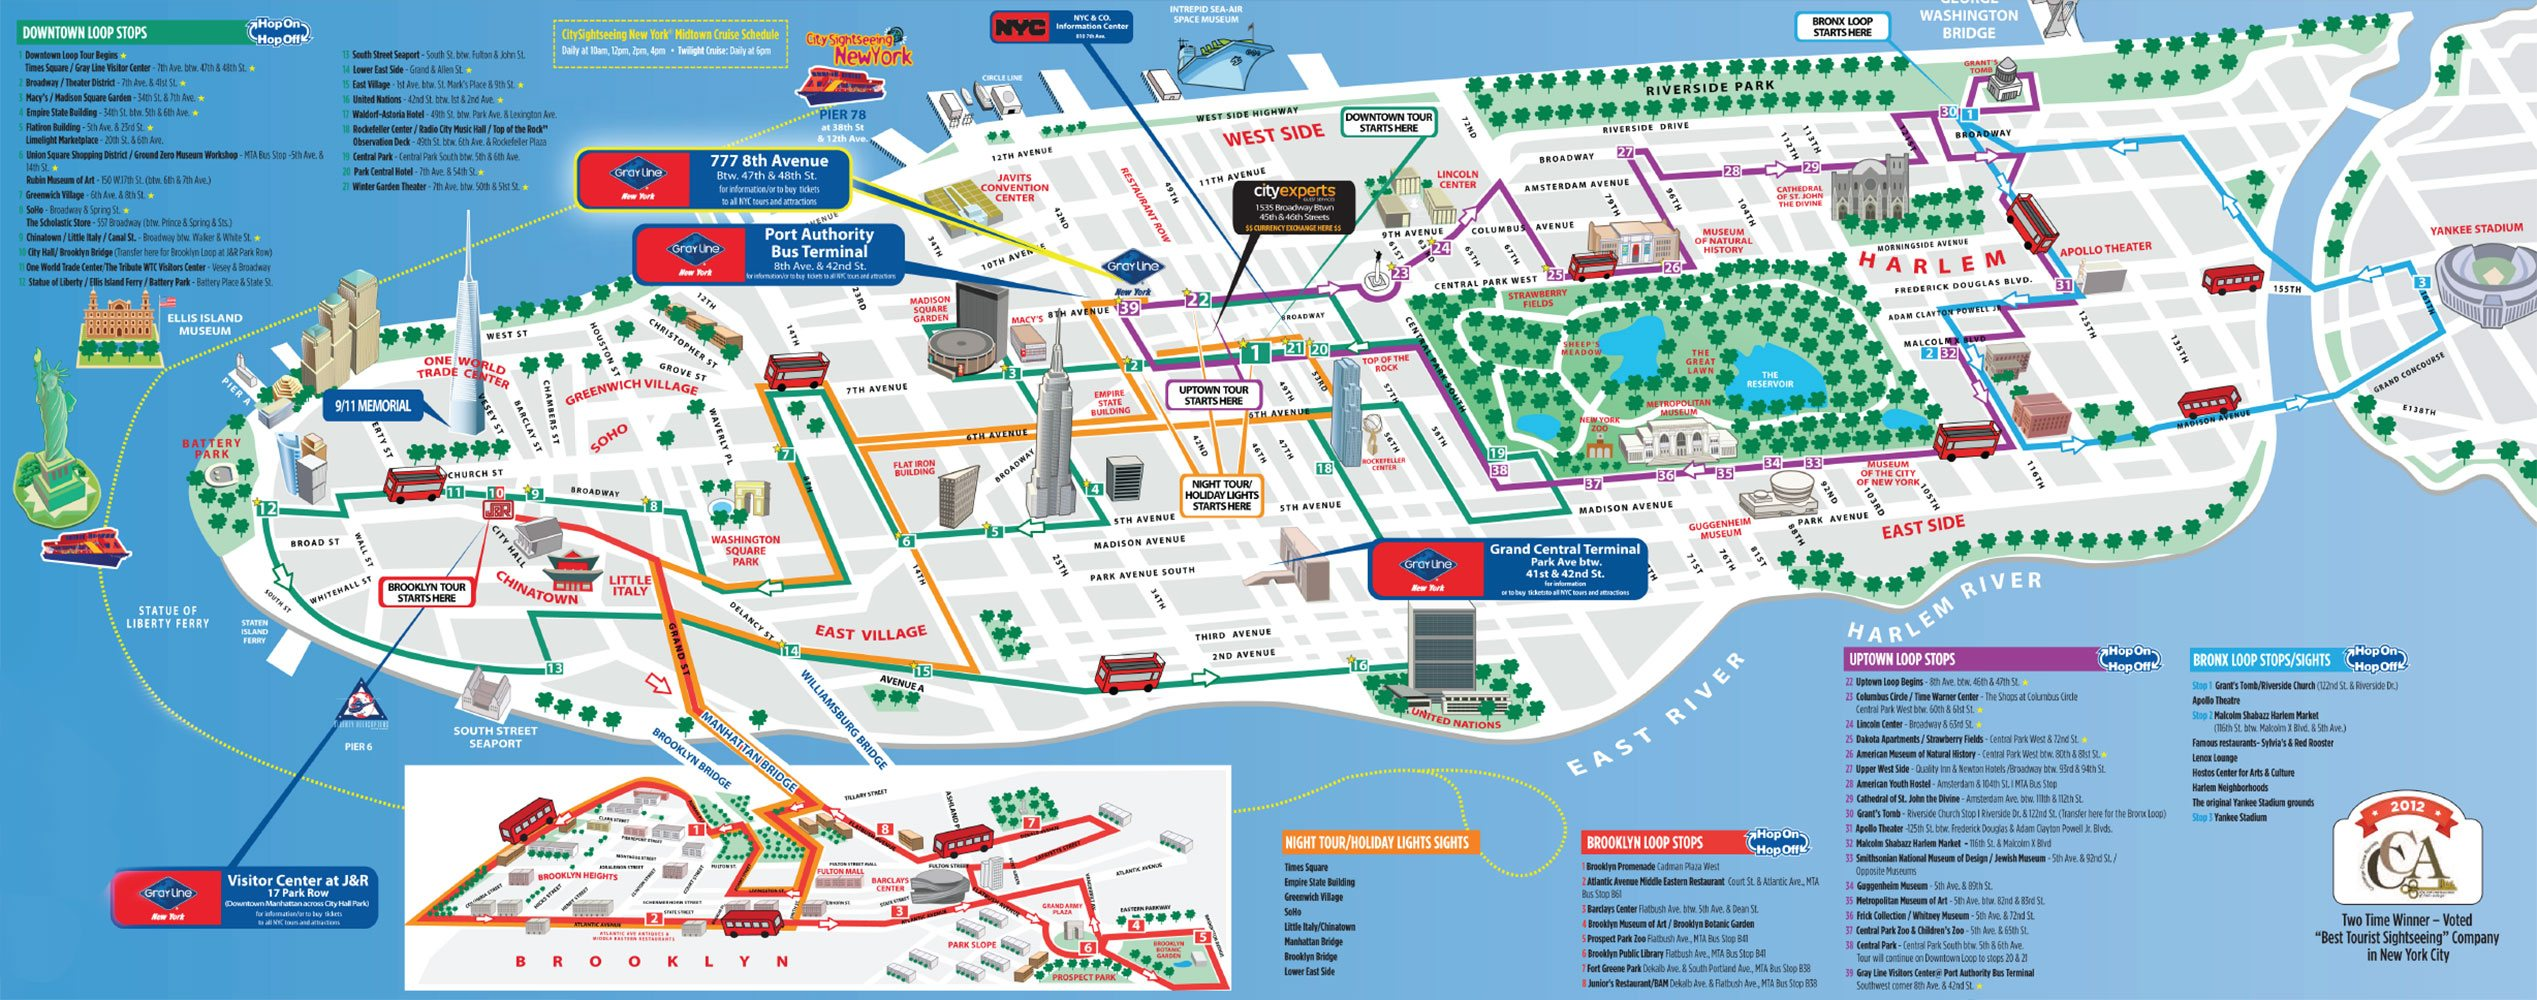 Map Of Attractions In New York City – New York City Map With Tourist Attractions